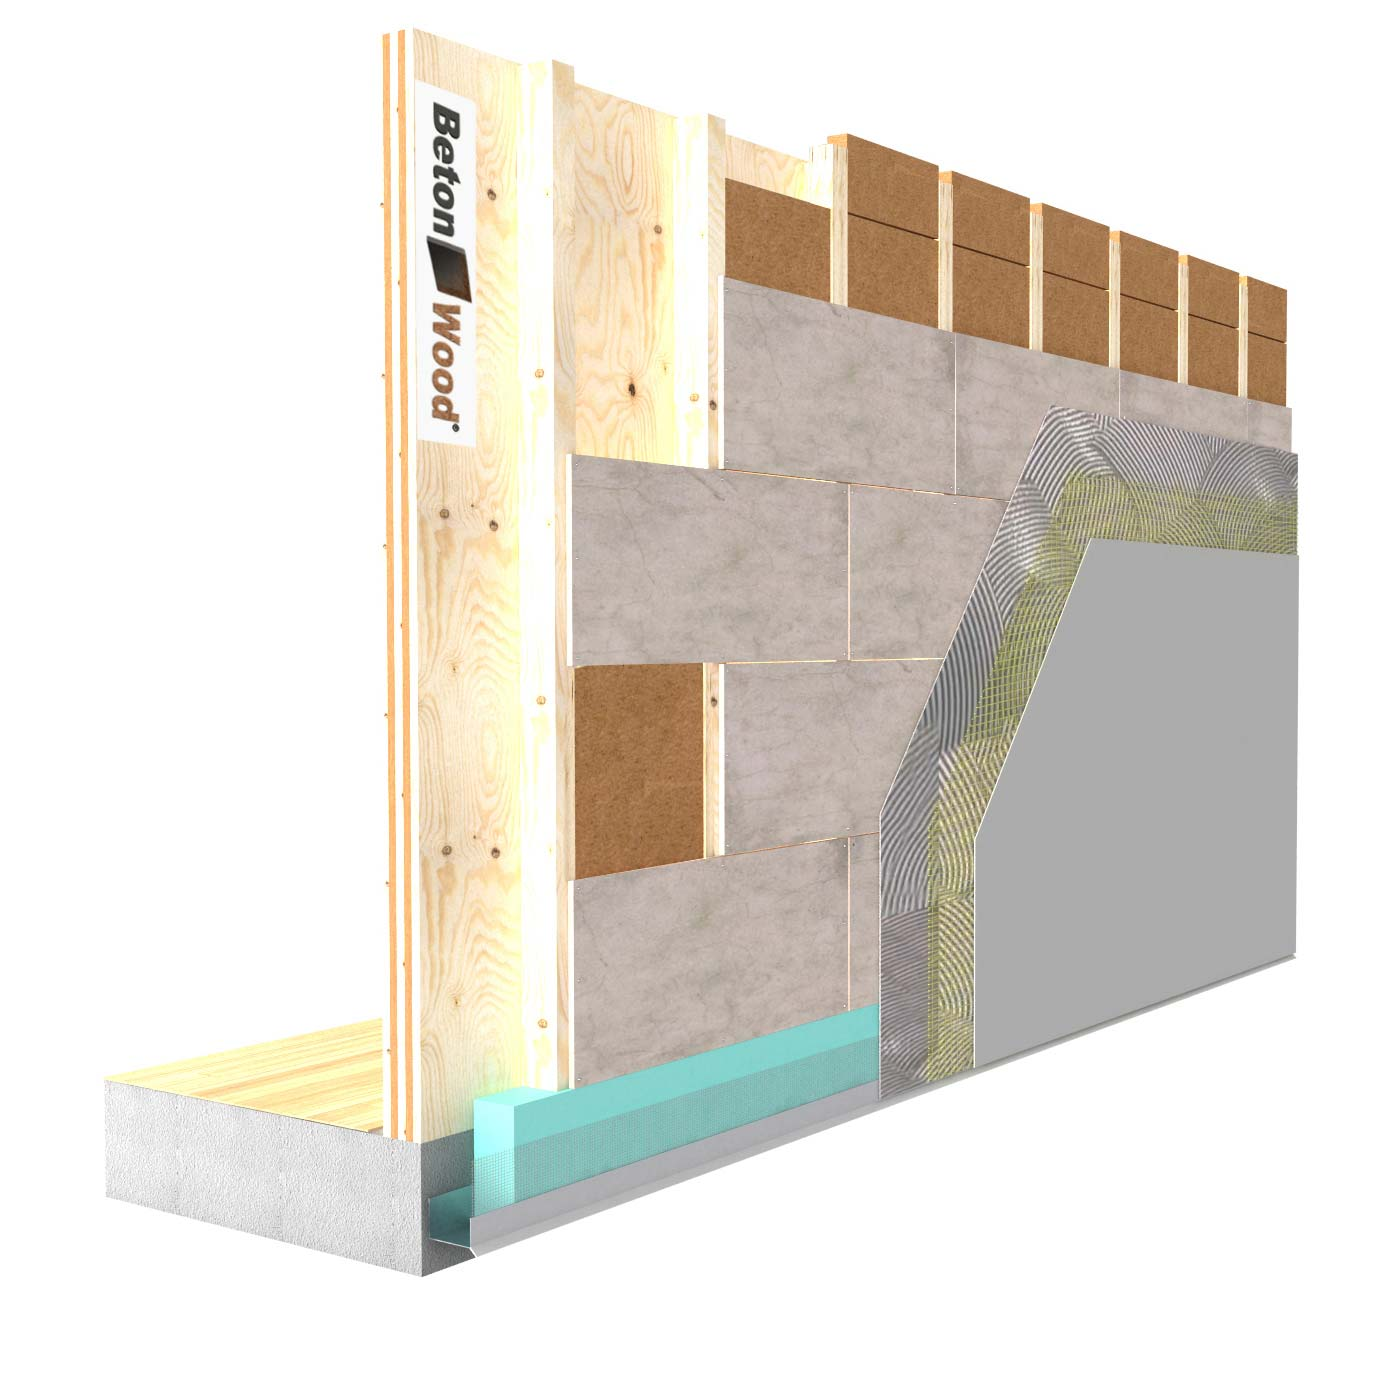 External insulation system with Fiber Wood FiberTherm and cement bonded particle board on X-Lam